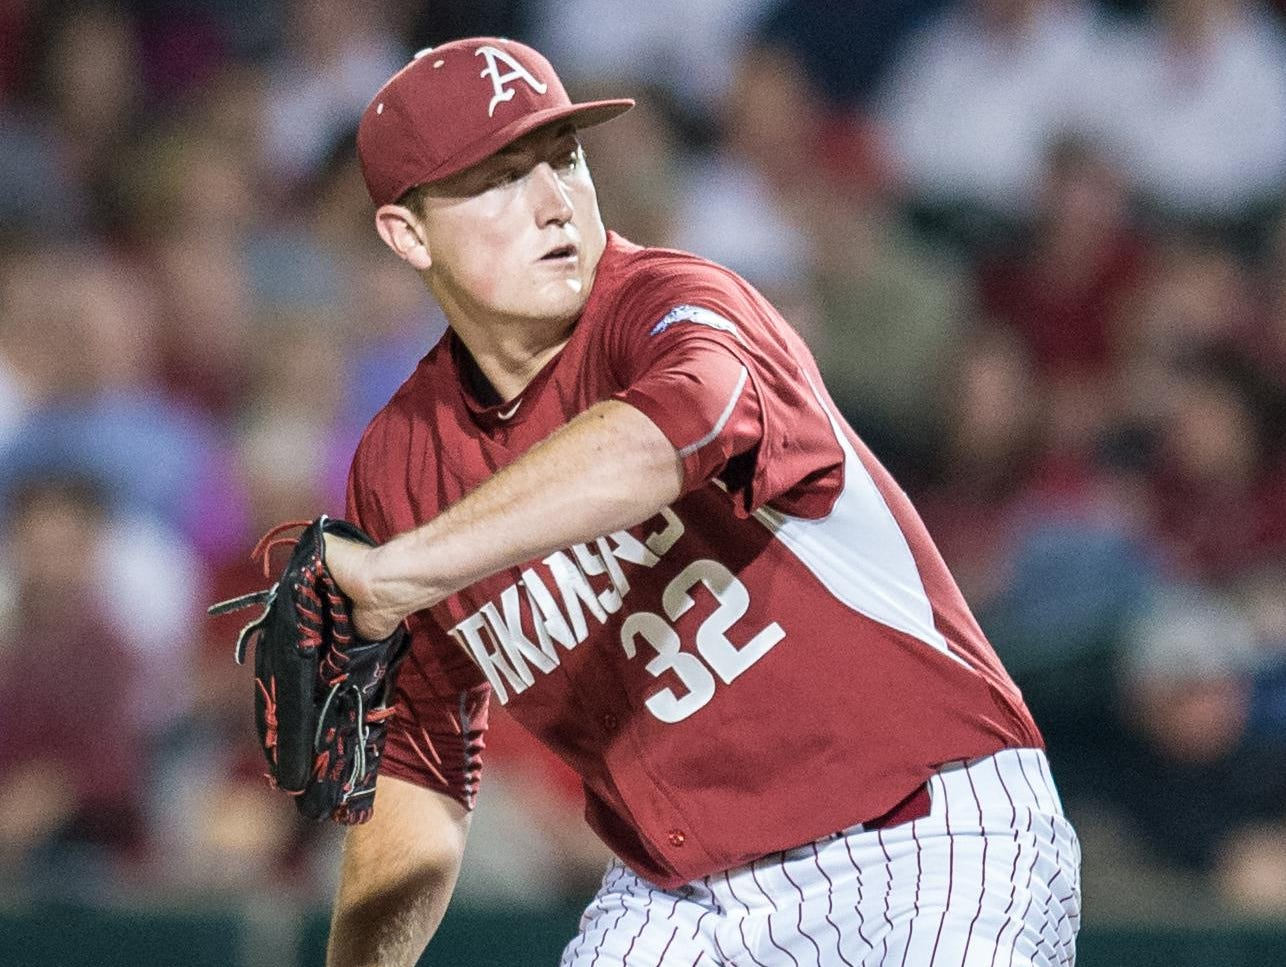 Arkansas closer Zach Jackson enters the Super Regional 5-0 with eight saves, 2.08 ERA and 89 strikeouts in 52 innings.